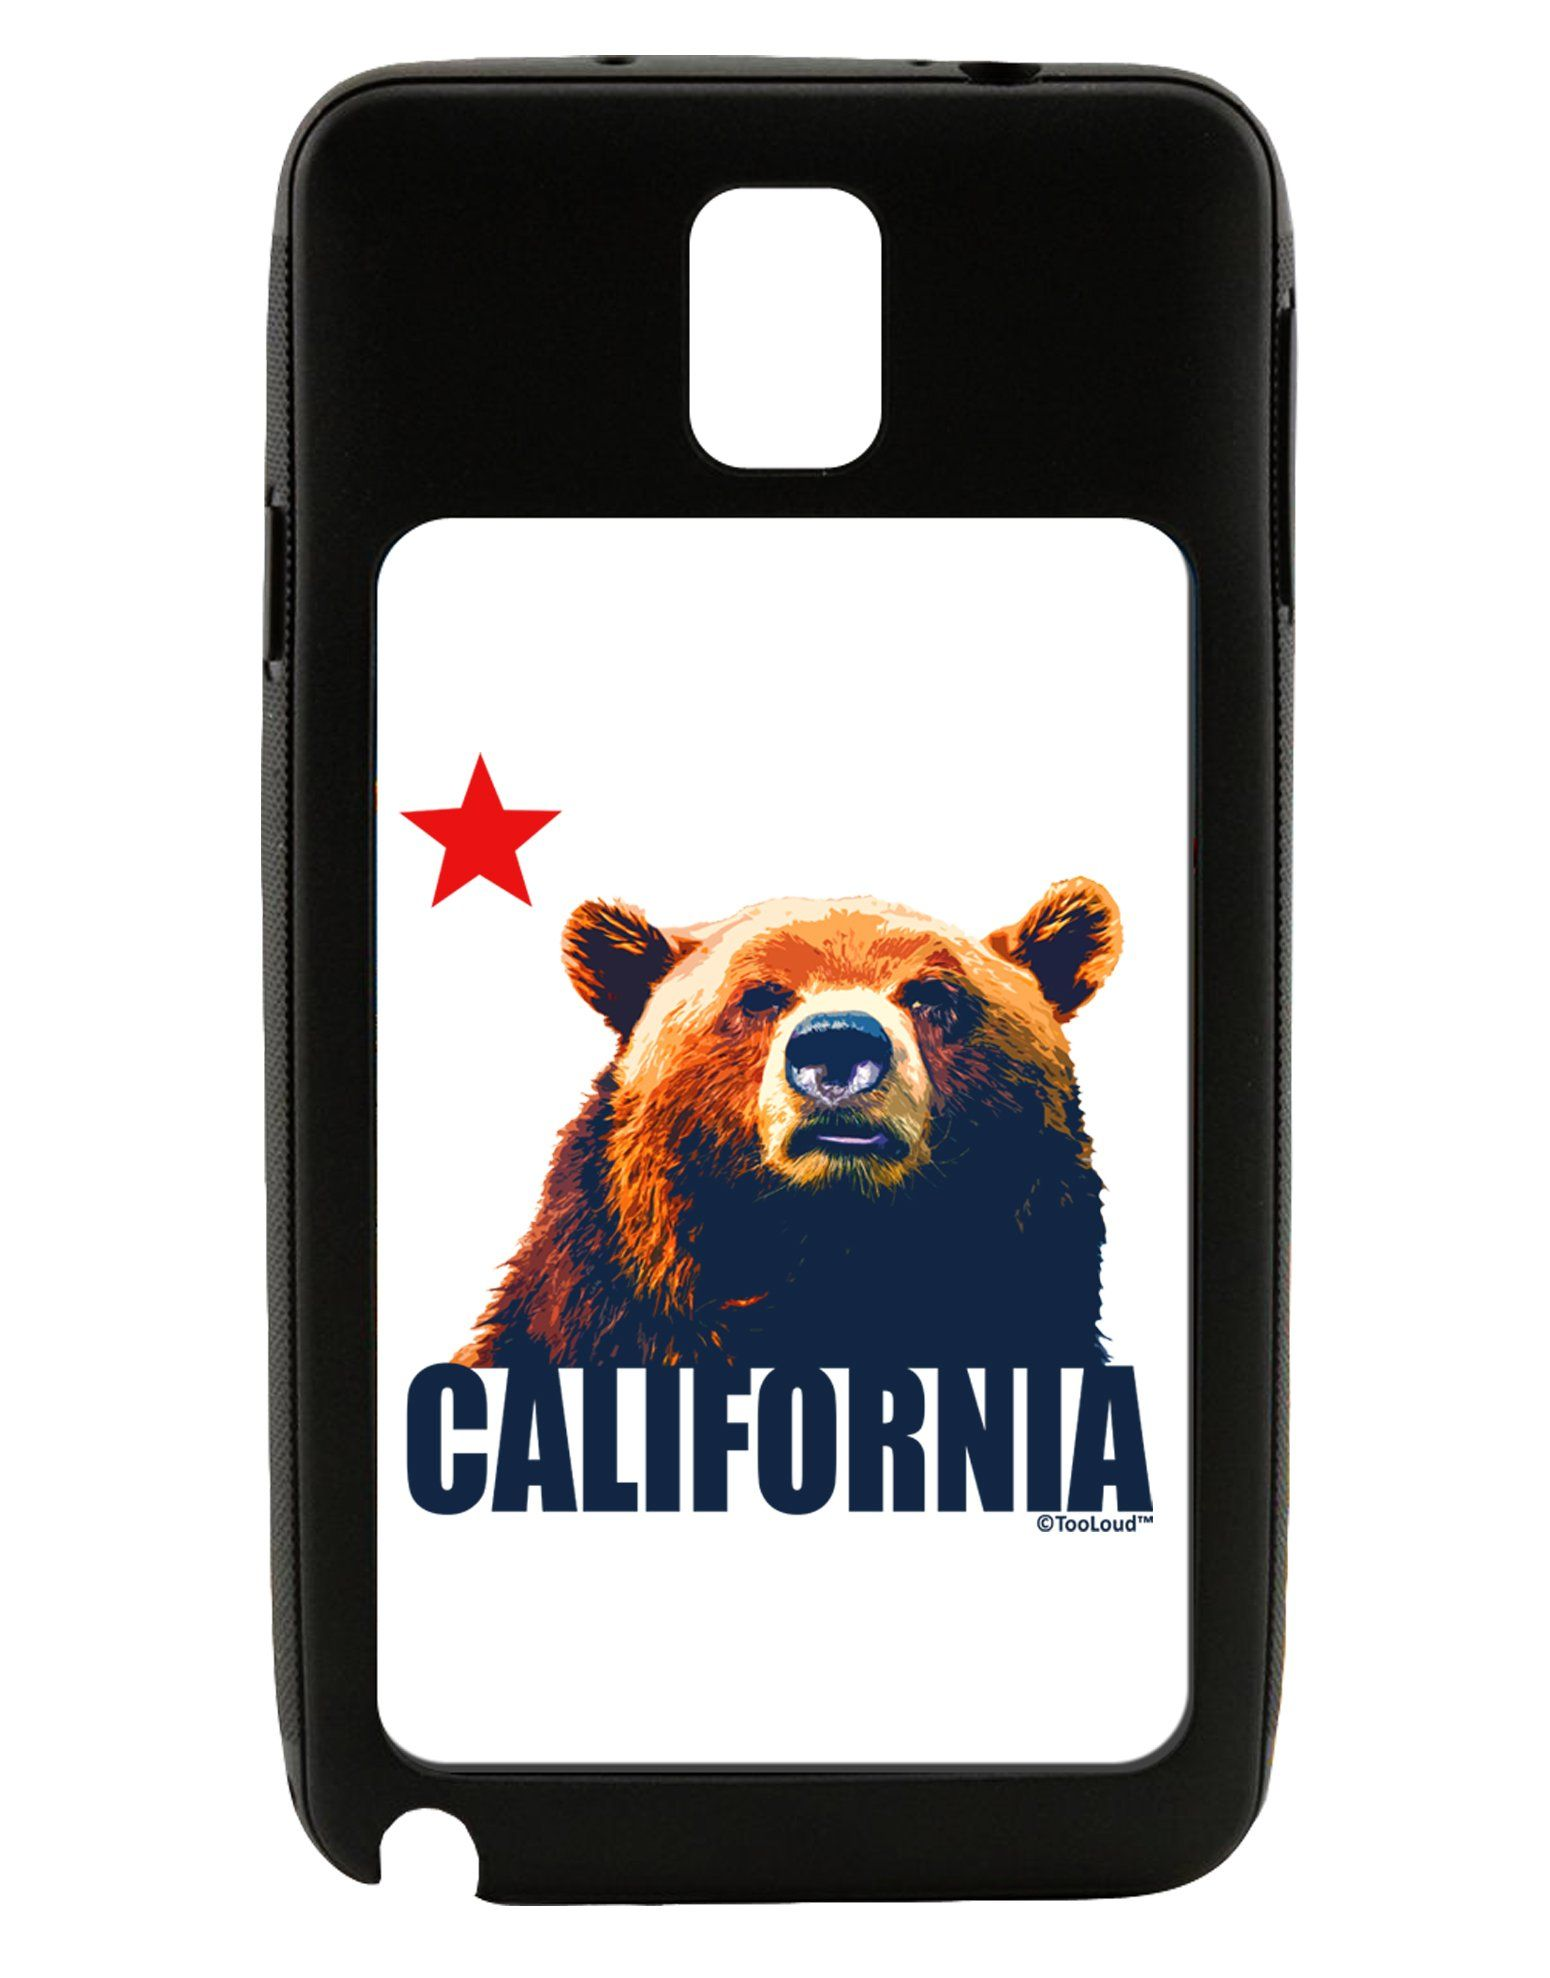 California Republic Design - Grizzly Bear and Star Galaxy Note 3 Case by TooLoud